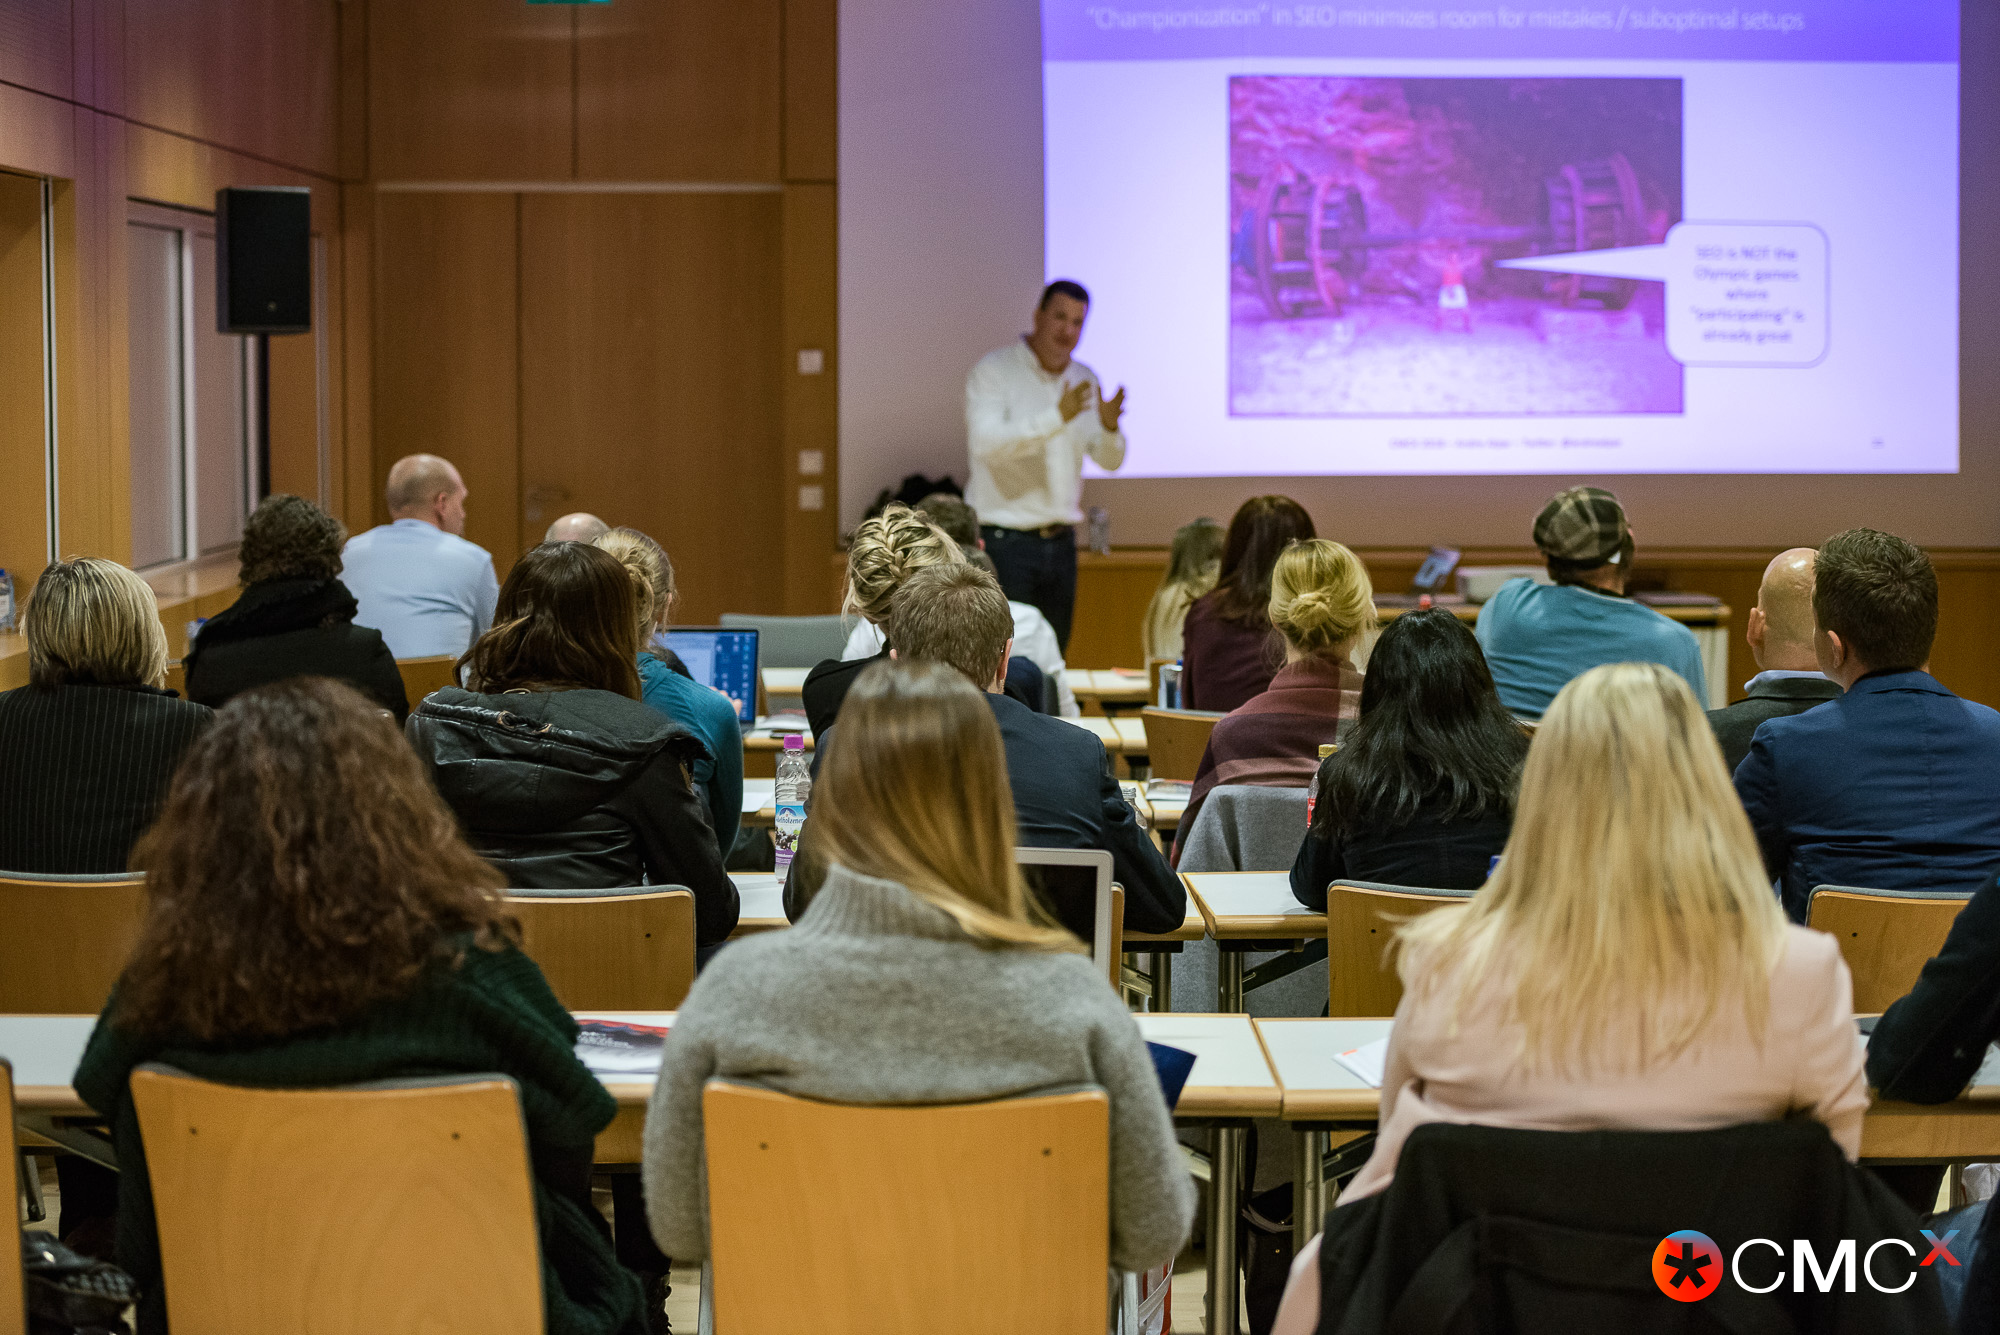 CMCX-Content-Marketing-Workshops